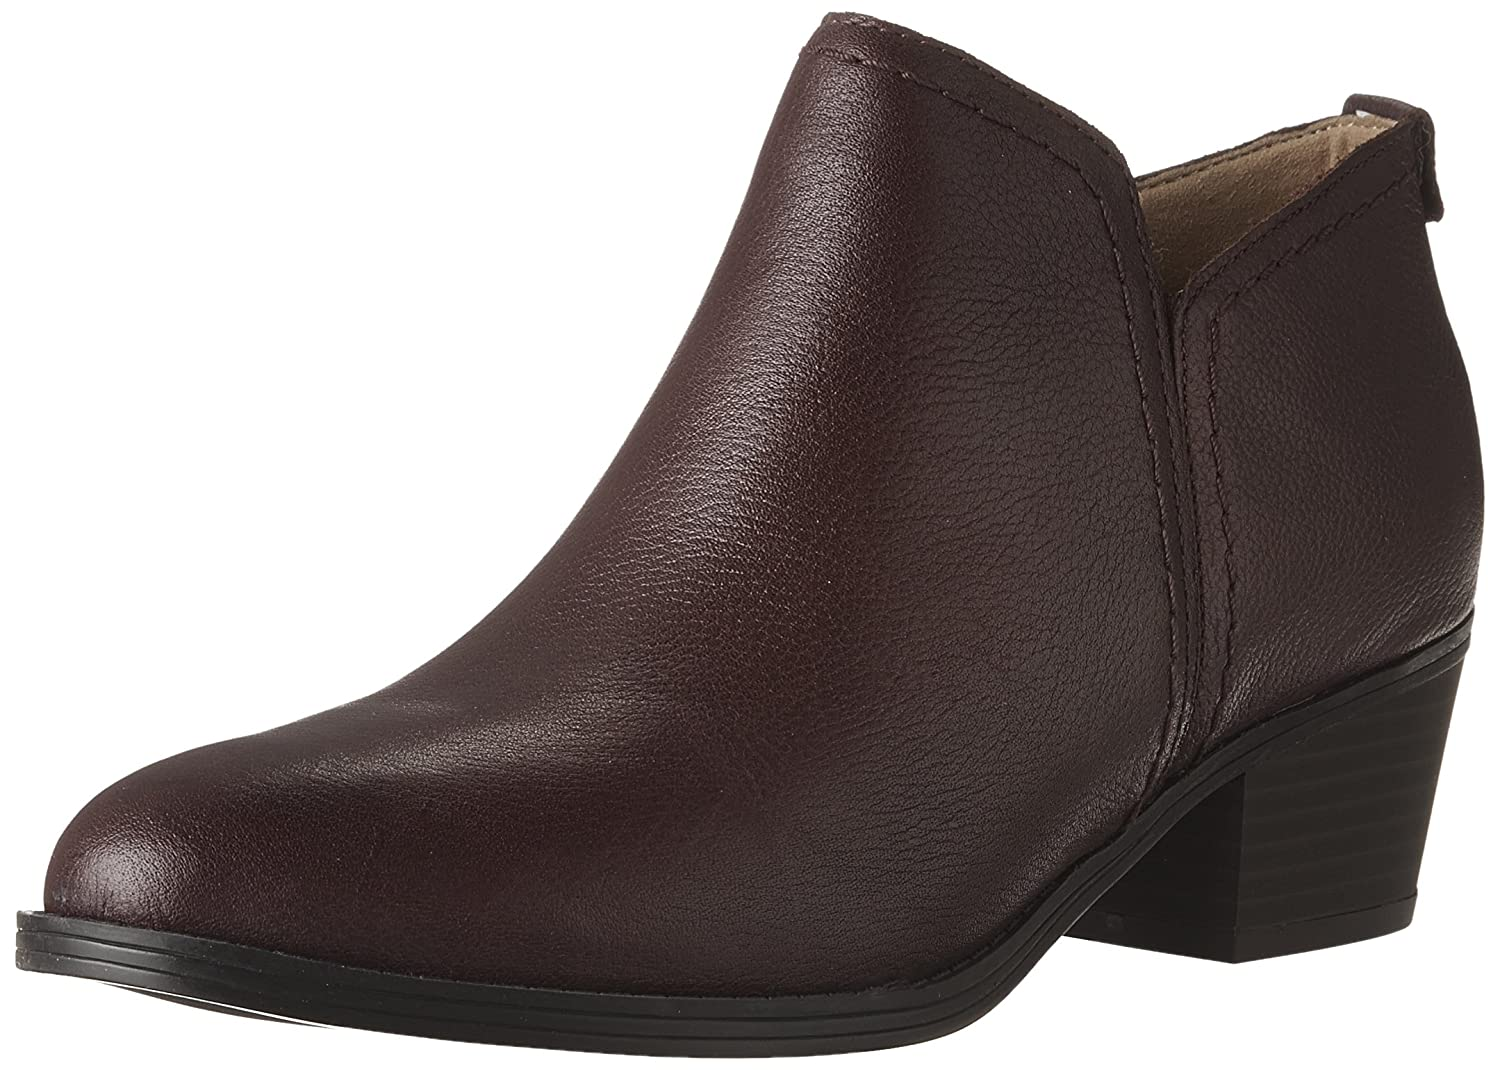 Naturalizer Women's Zarie Boot B072FKWGB7 10 W US|Bordo